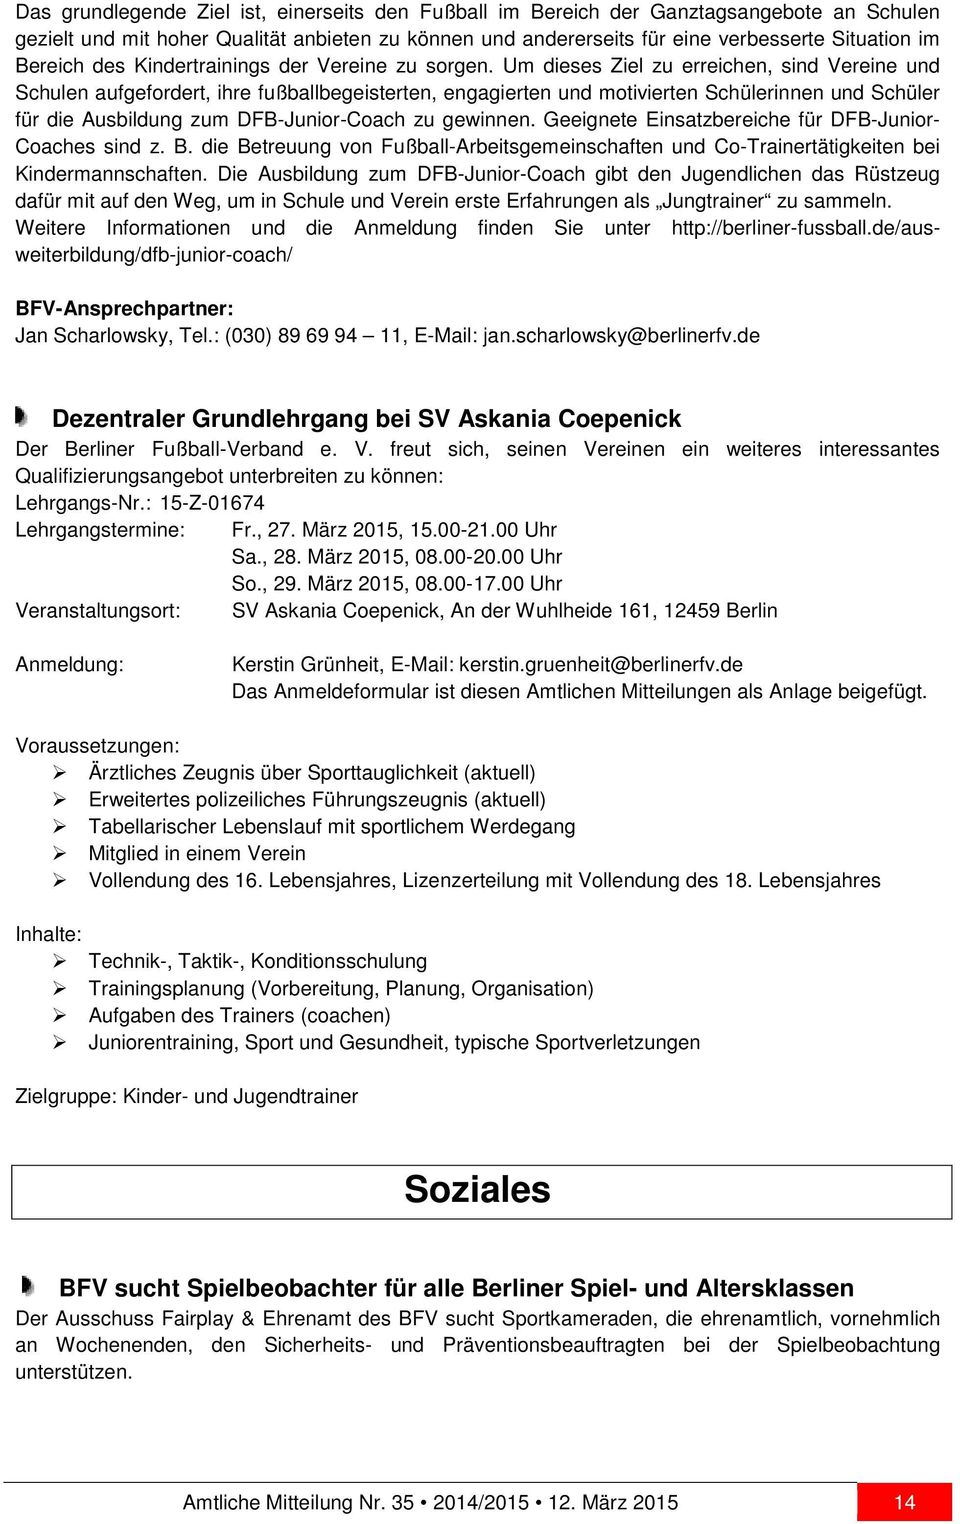 Fein Fußball Coaching Lebenslauf Ziel Galerie - Entry Level Resume ...